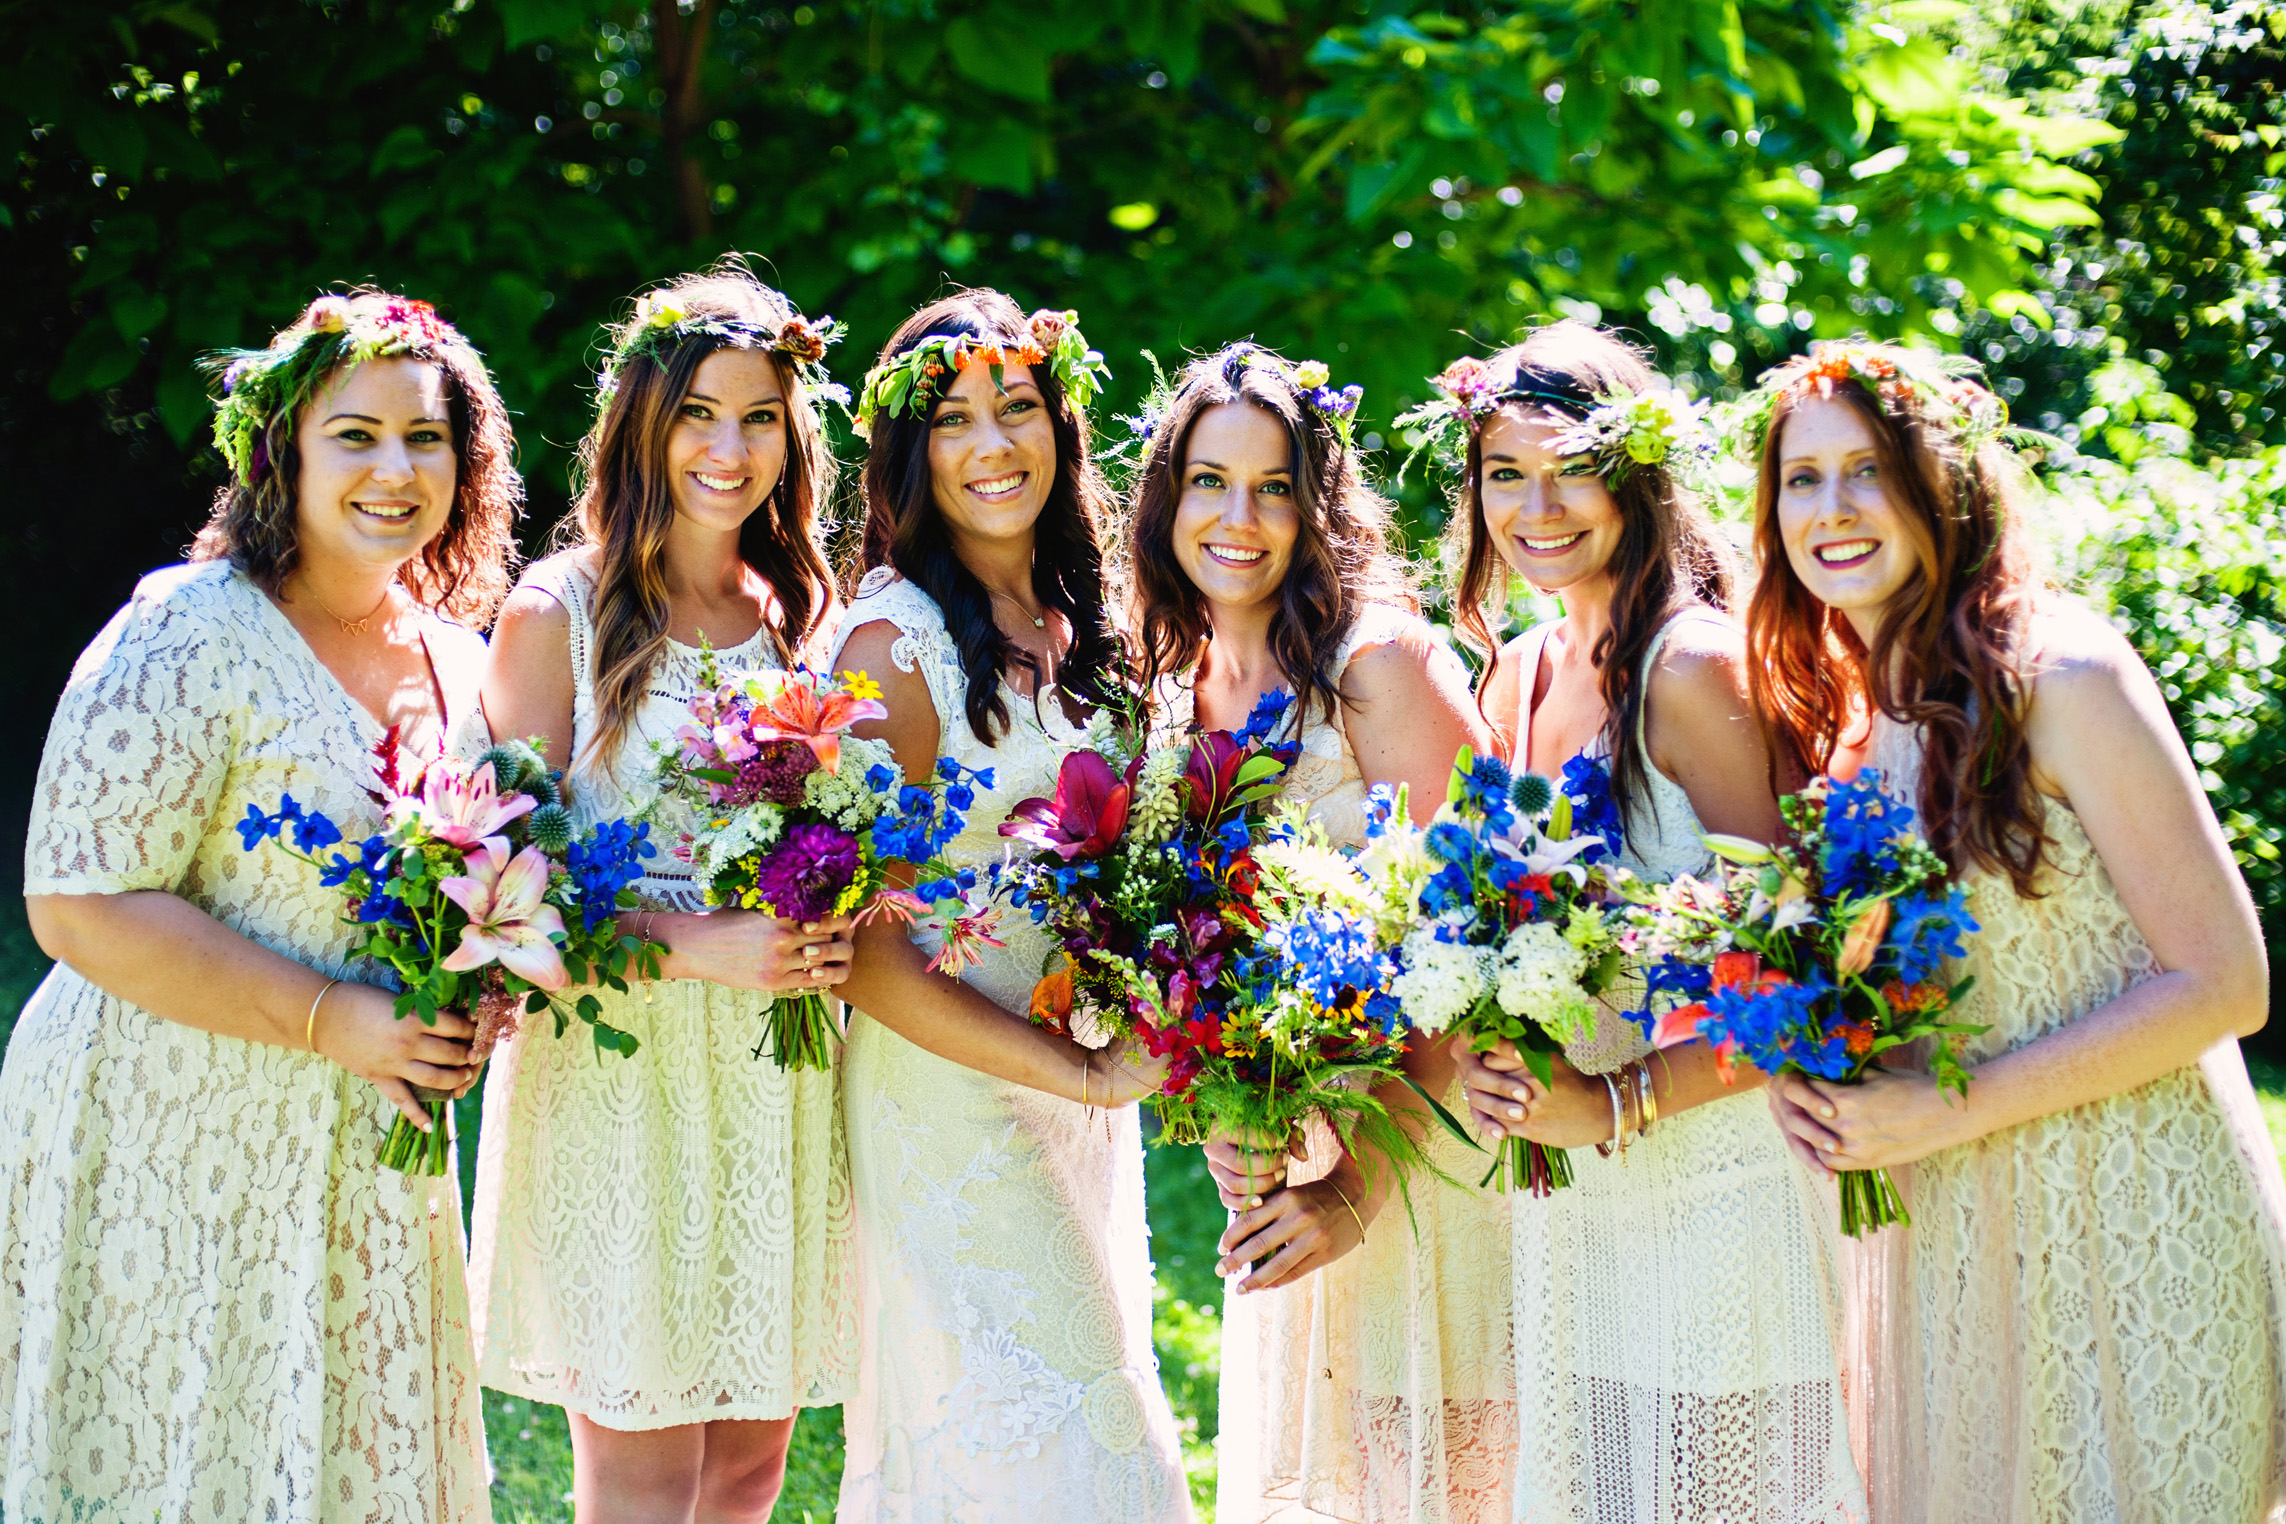 Bridal Party Bouquets for July wedding. We may not be able to promise exact flowers because of seasonality, but what we promise is a truly unique, handcrafted and locally sourced design that will be a feast for your senses. Photo provided by Allison Guerra